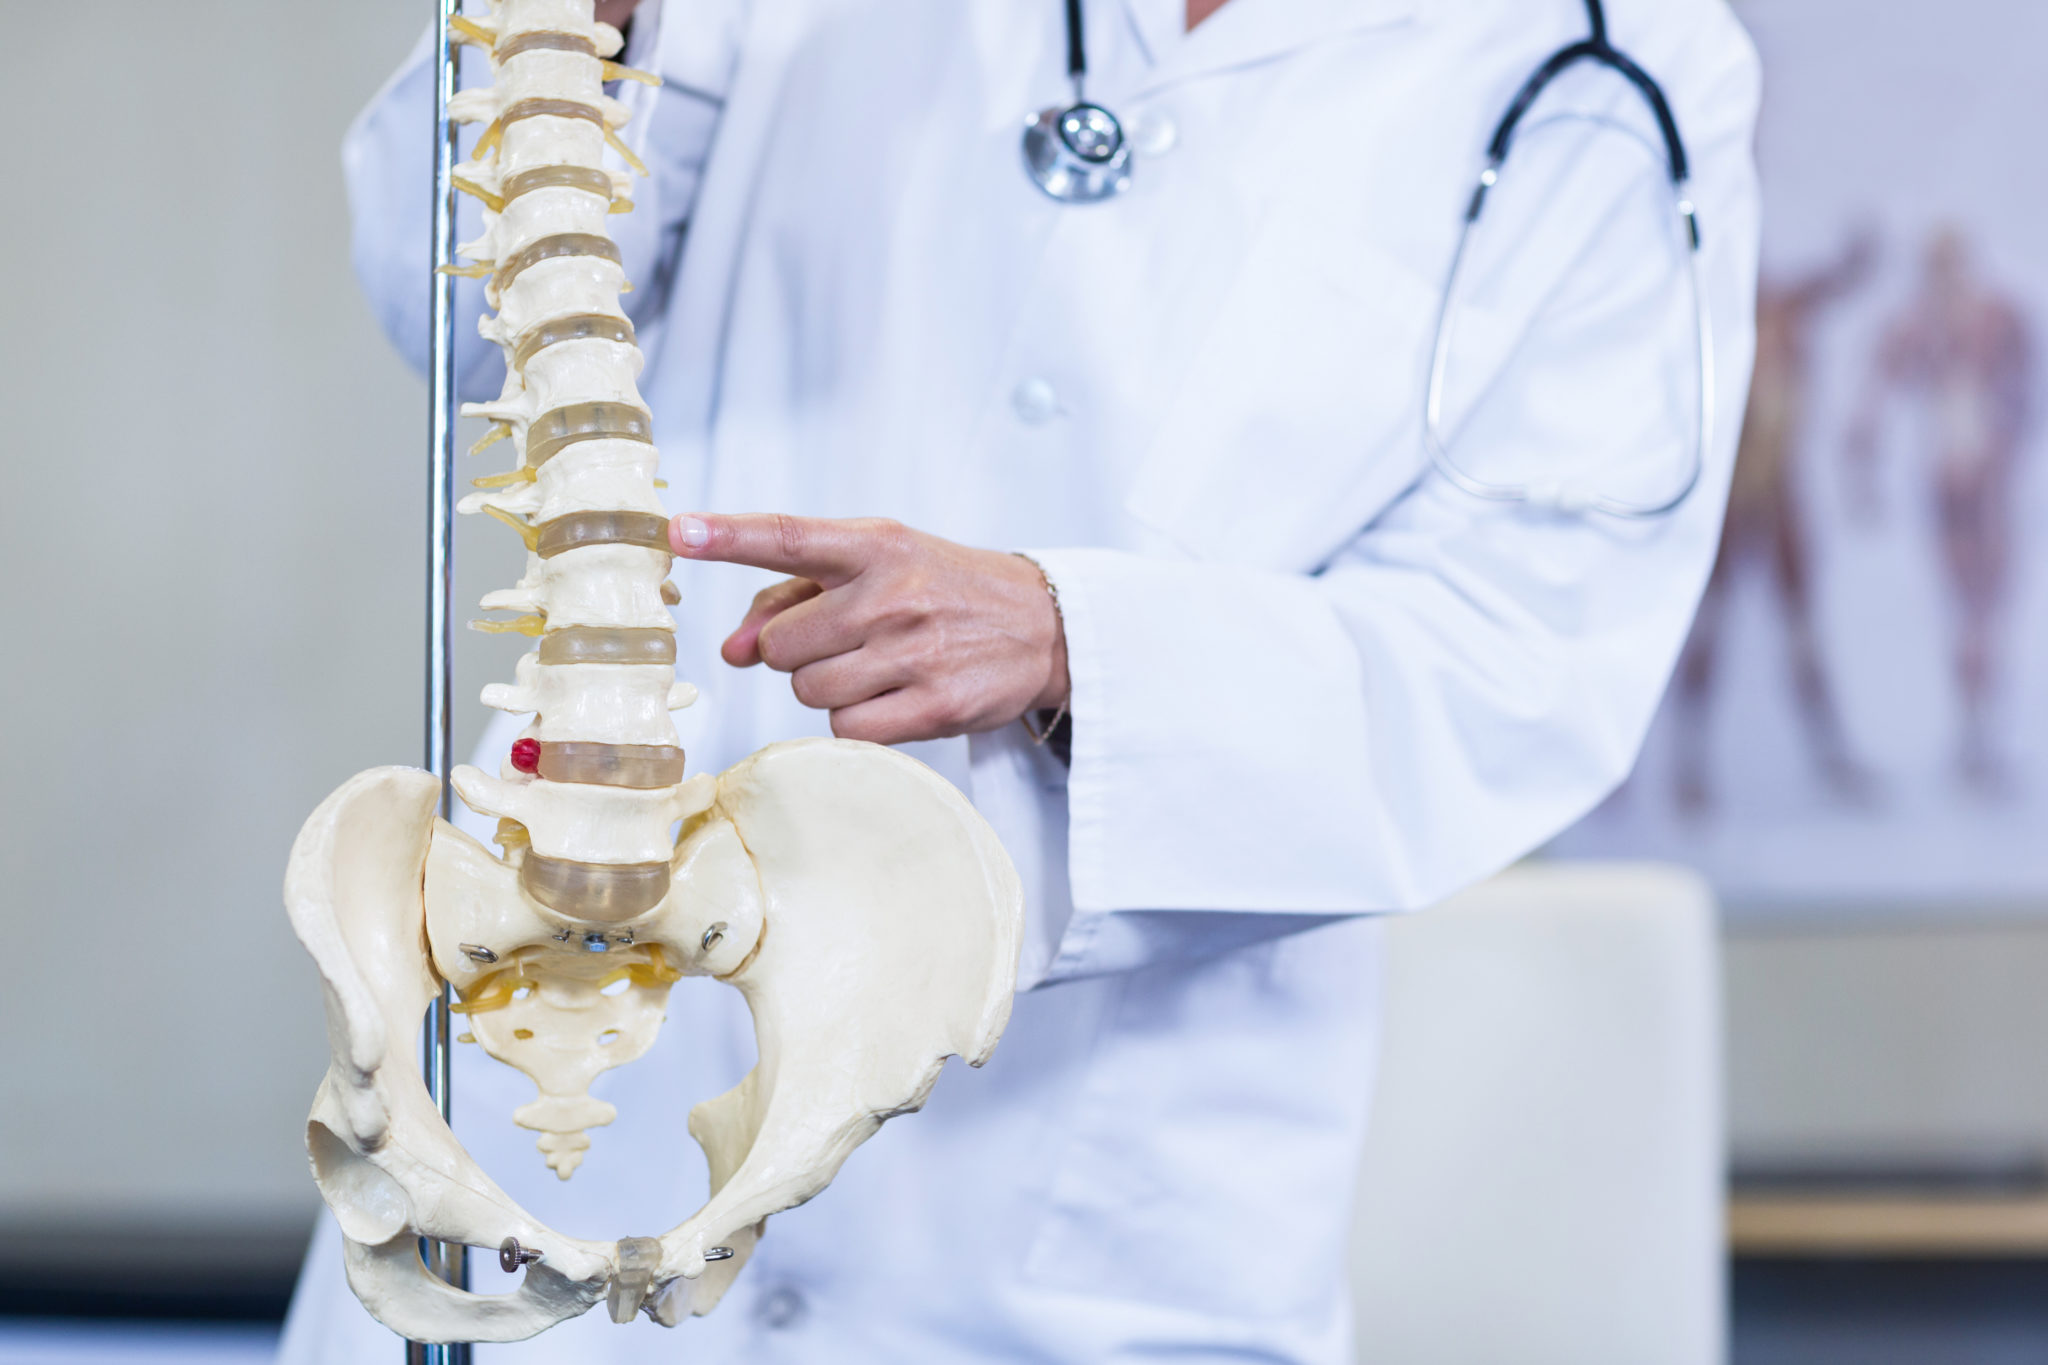 Physiotherapist examining a spine model in clinic